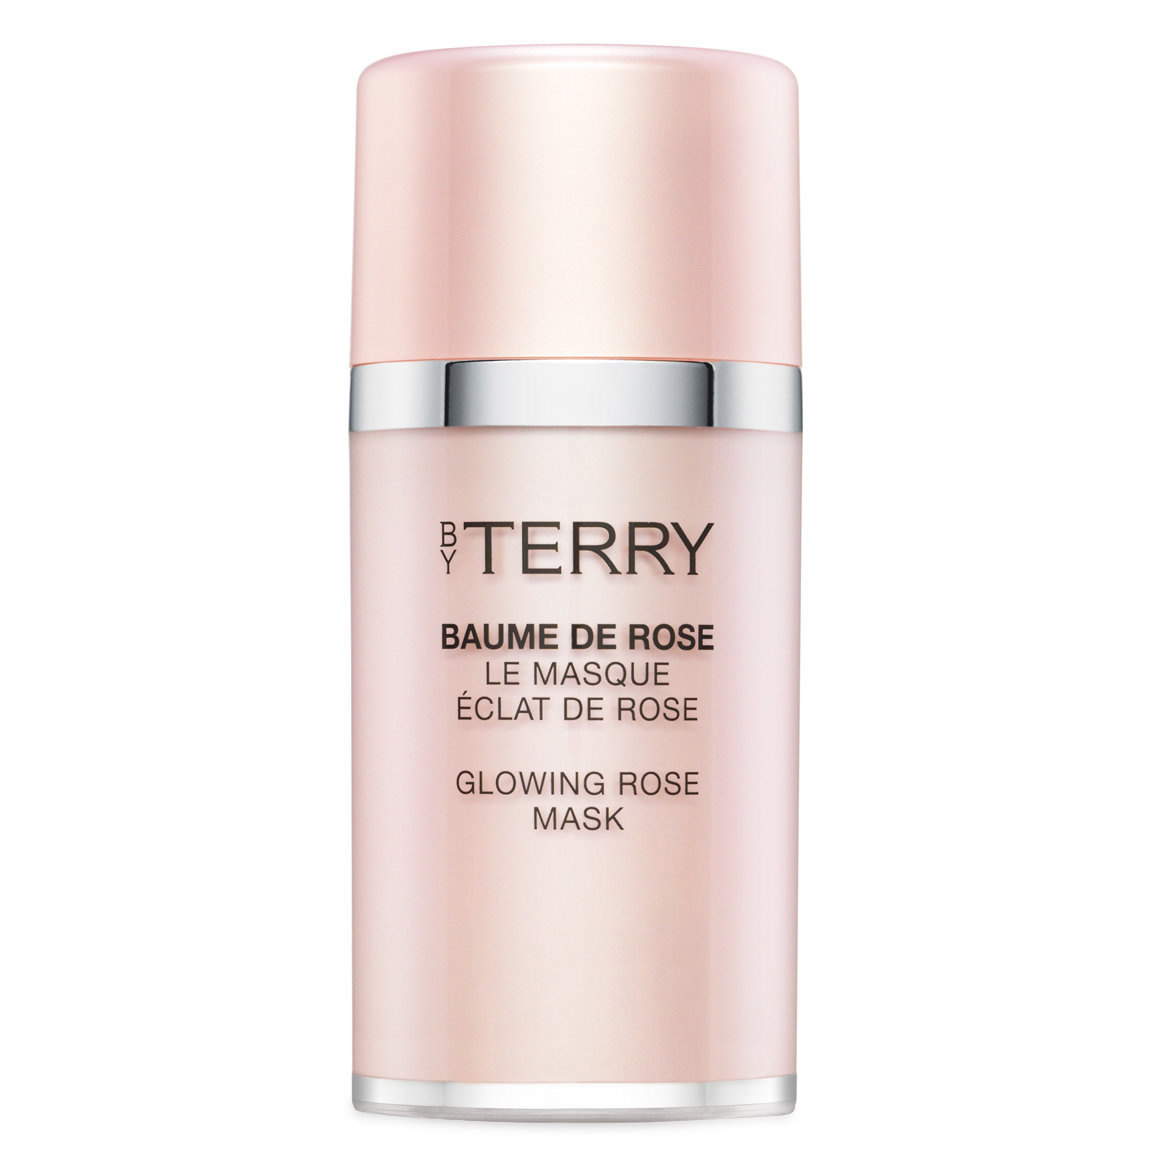 BY TERRY Baume de Rose Glowing Mask product swatch.